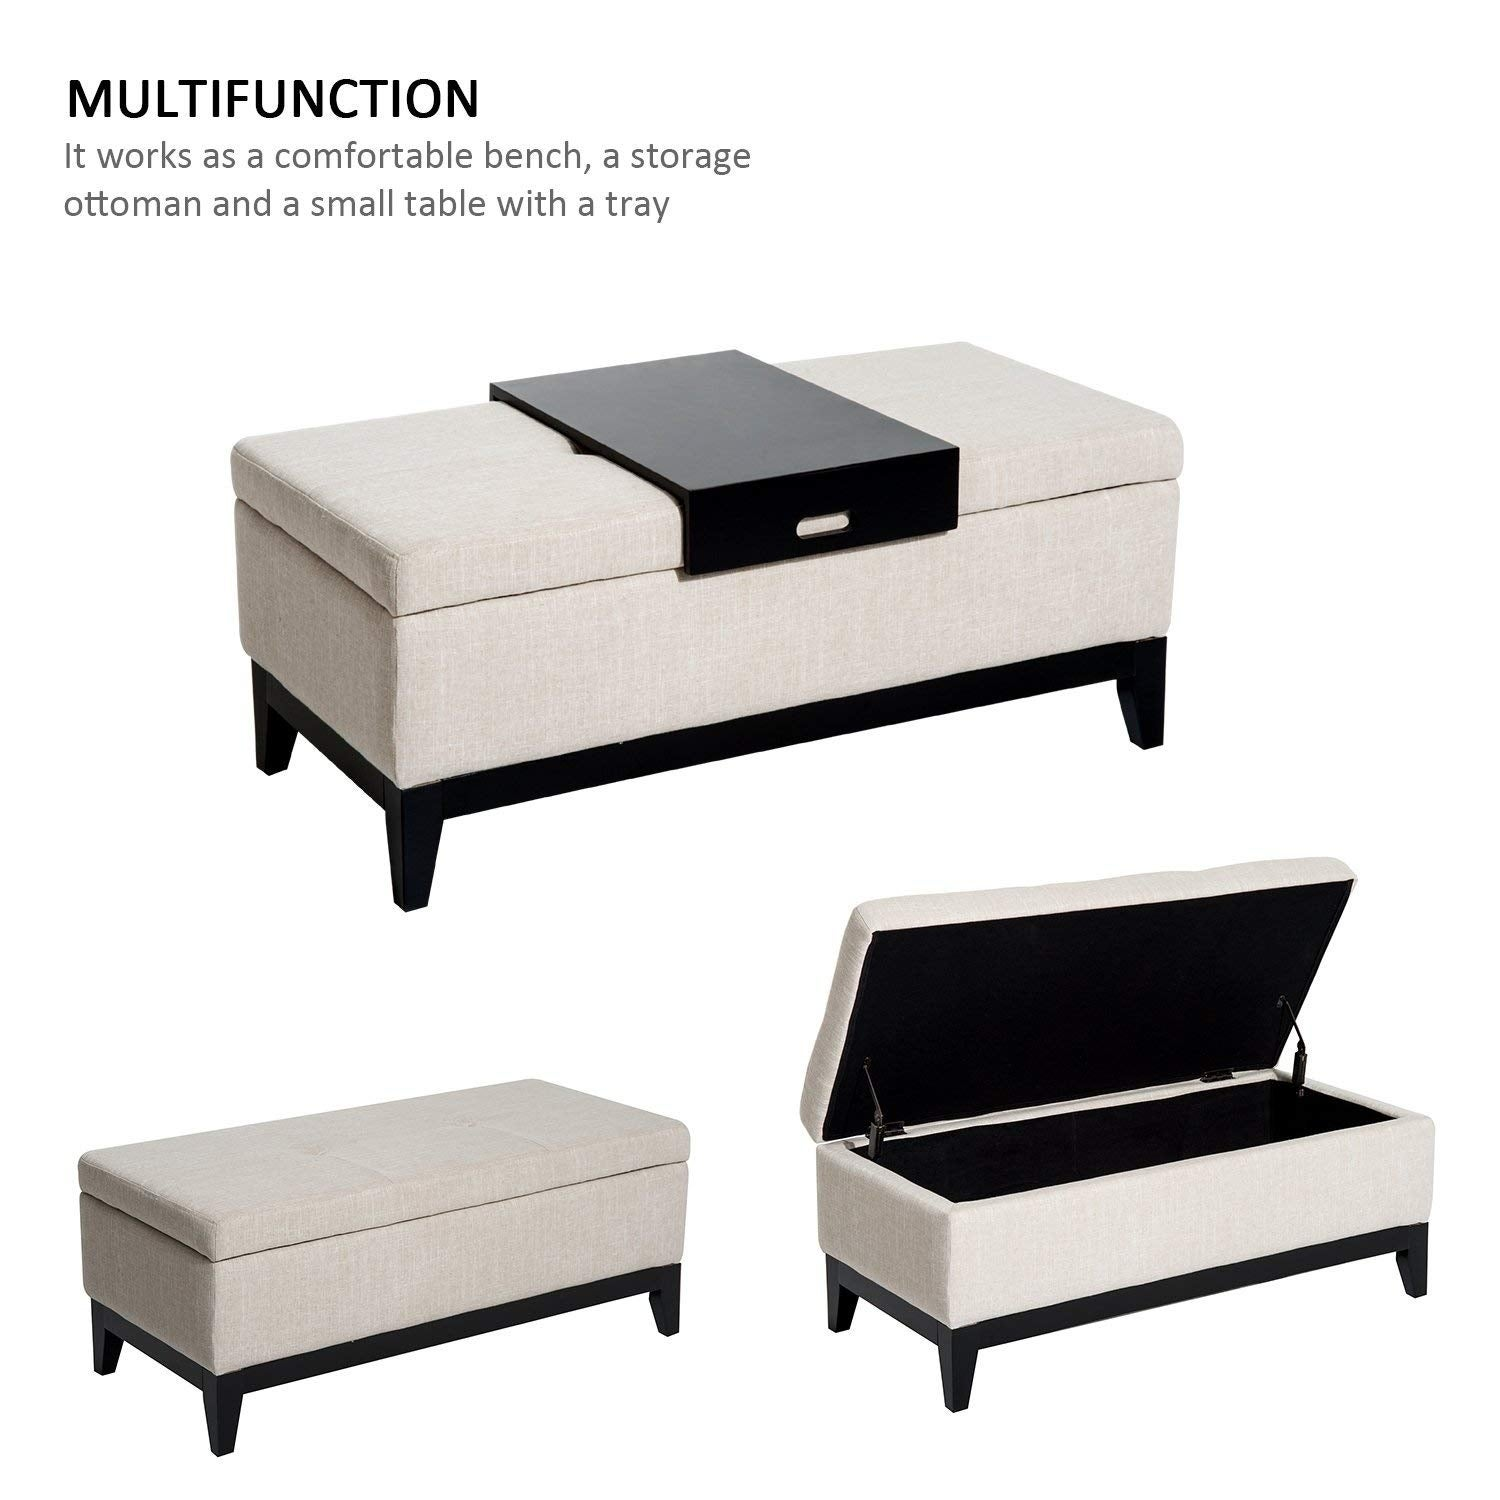 Admirable Homcom 42 Rectangular Linen Fabric Storage Ottoman Bench With Tray Cream White Gmtry Best Dining Table And Chair Ideas Images Gmtryco